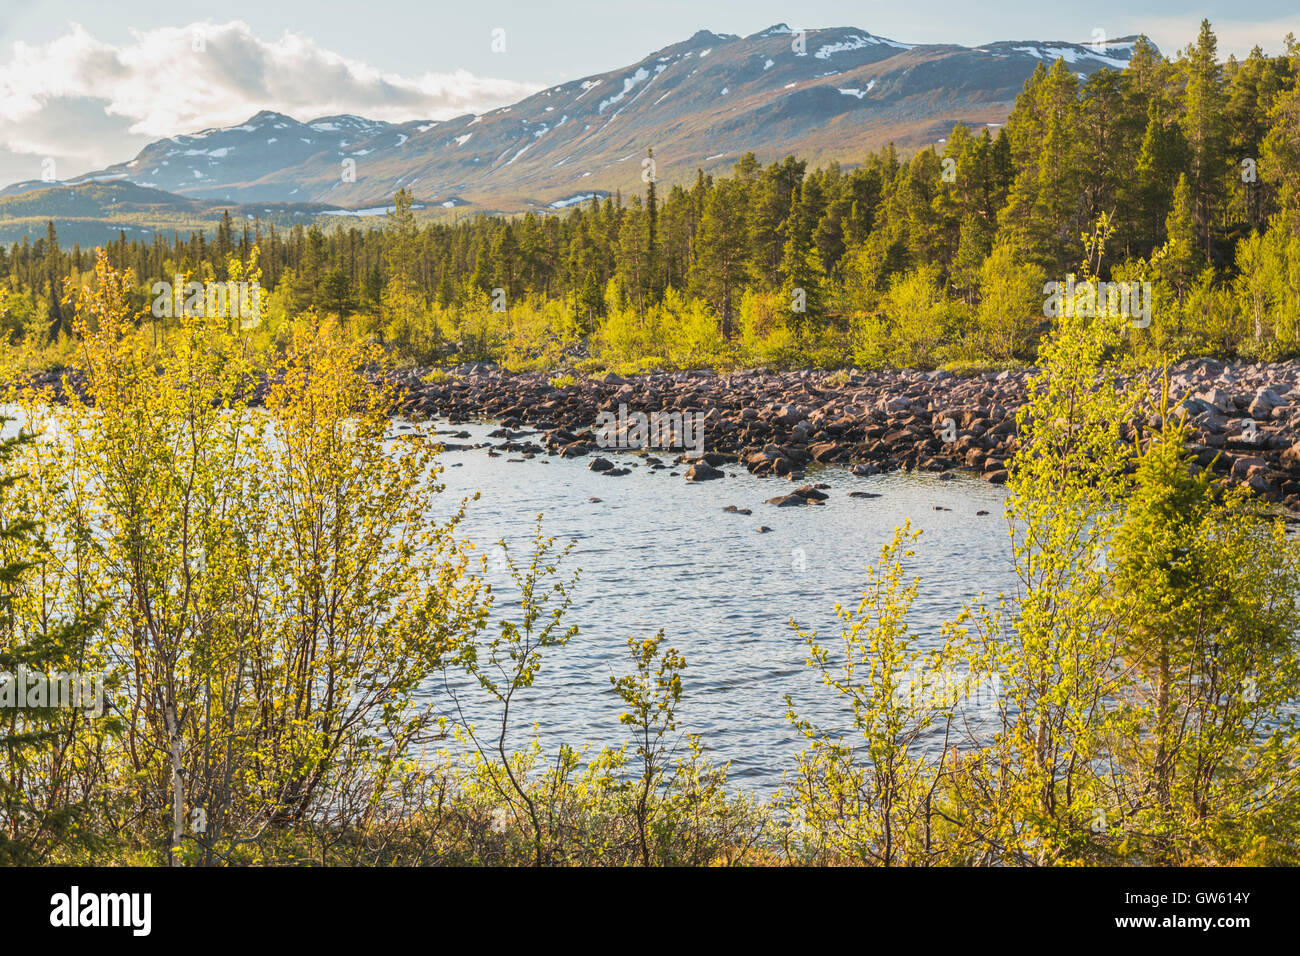 Spring time in Stora sjöfallets national park, little snow on the mountains, birch trees budding, little creek - Stock Image